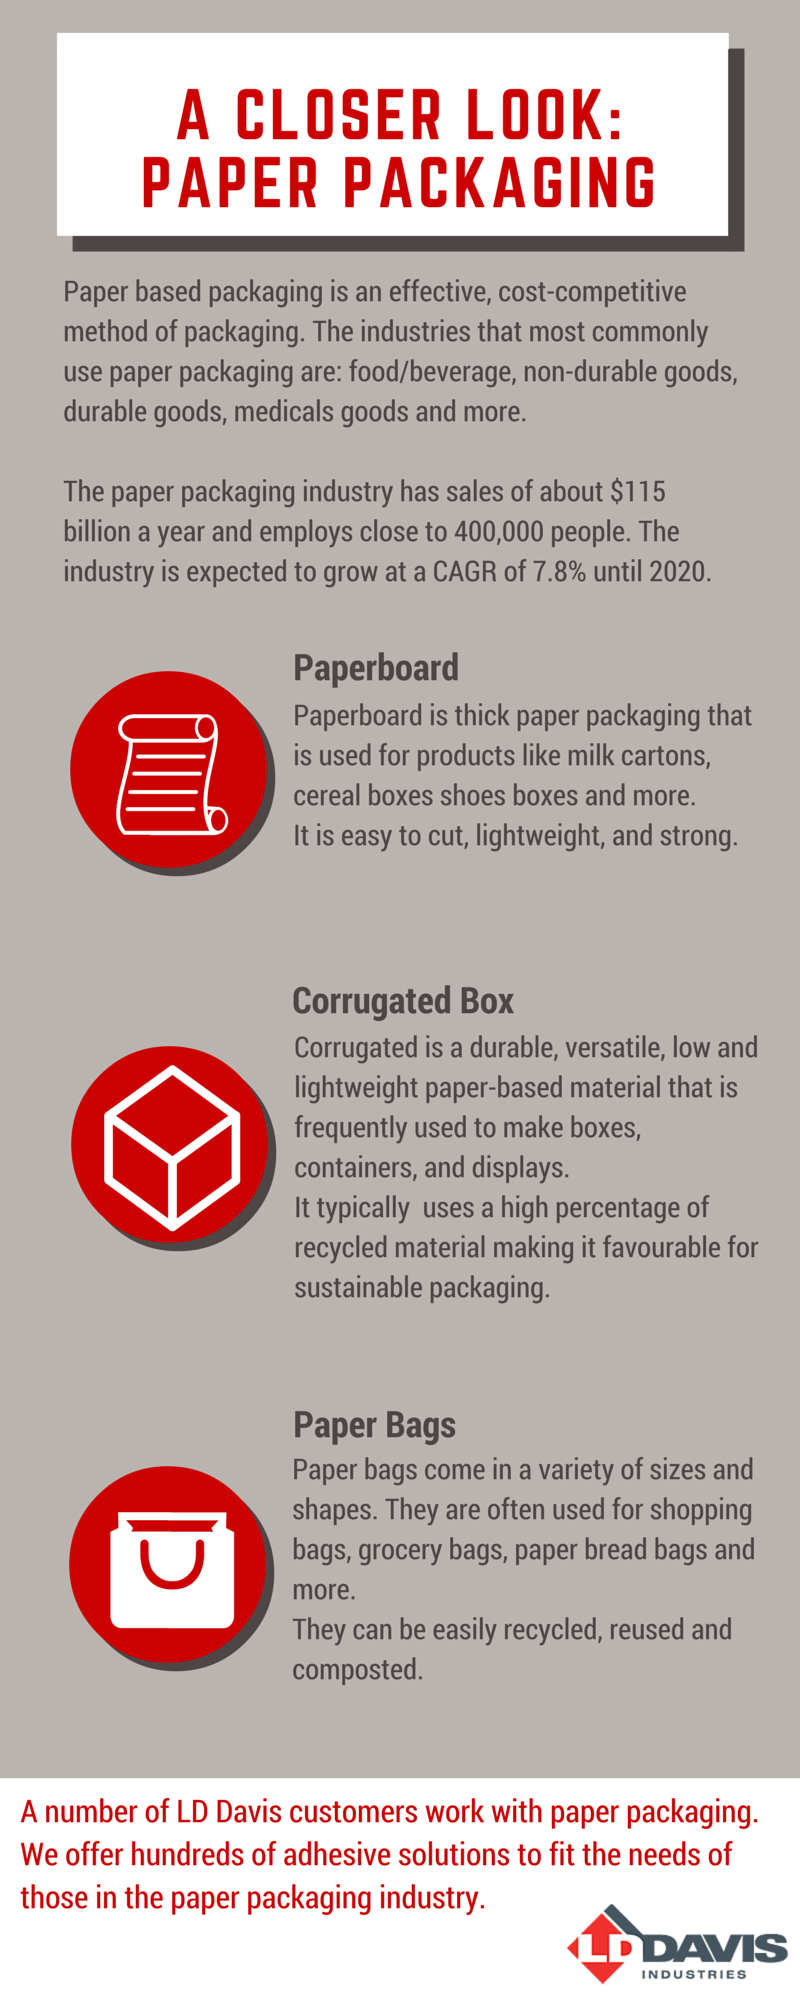 A Closer Look: Paper Packaging